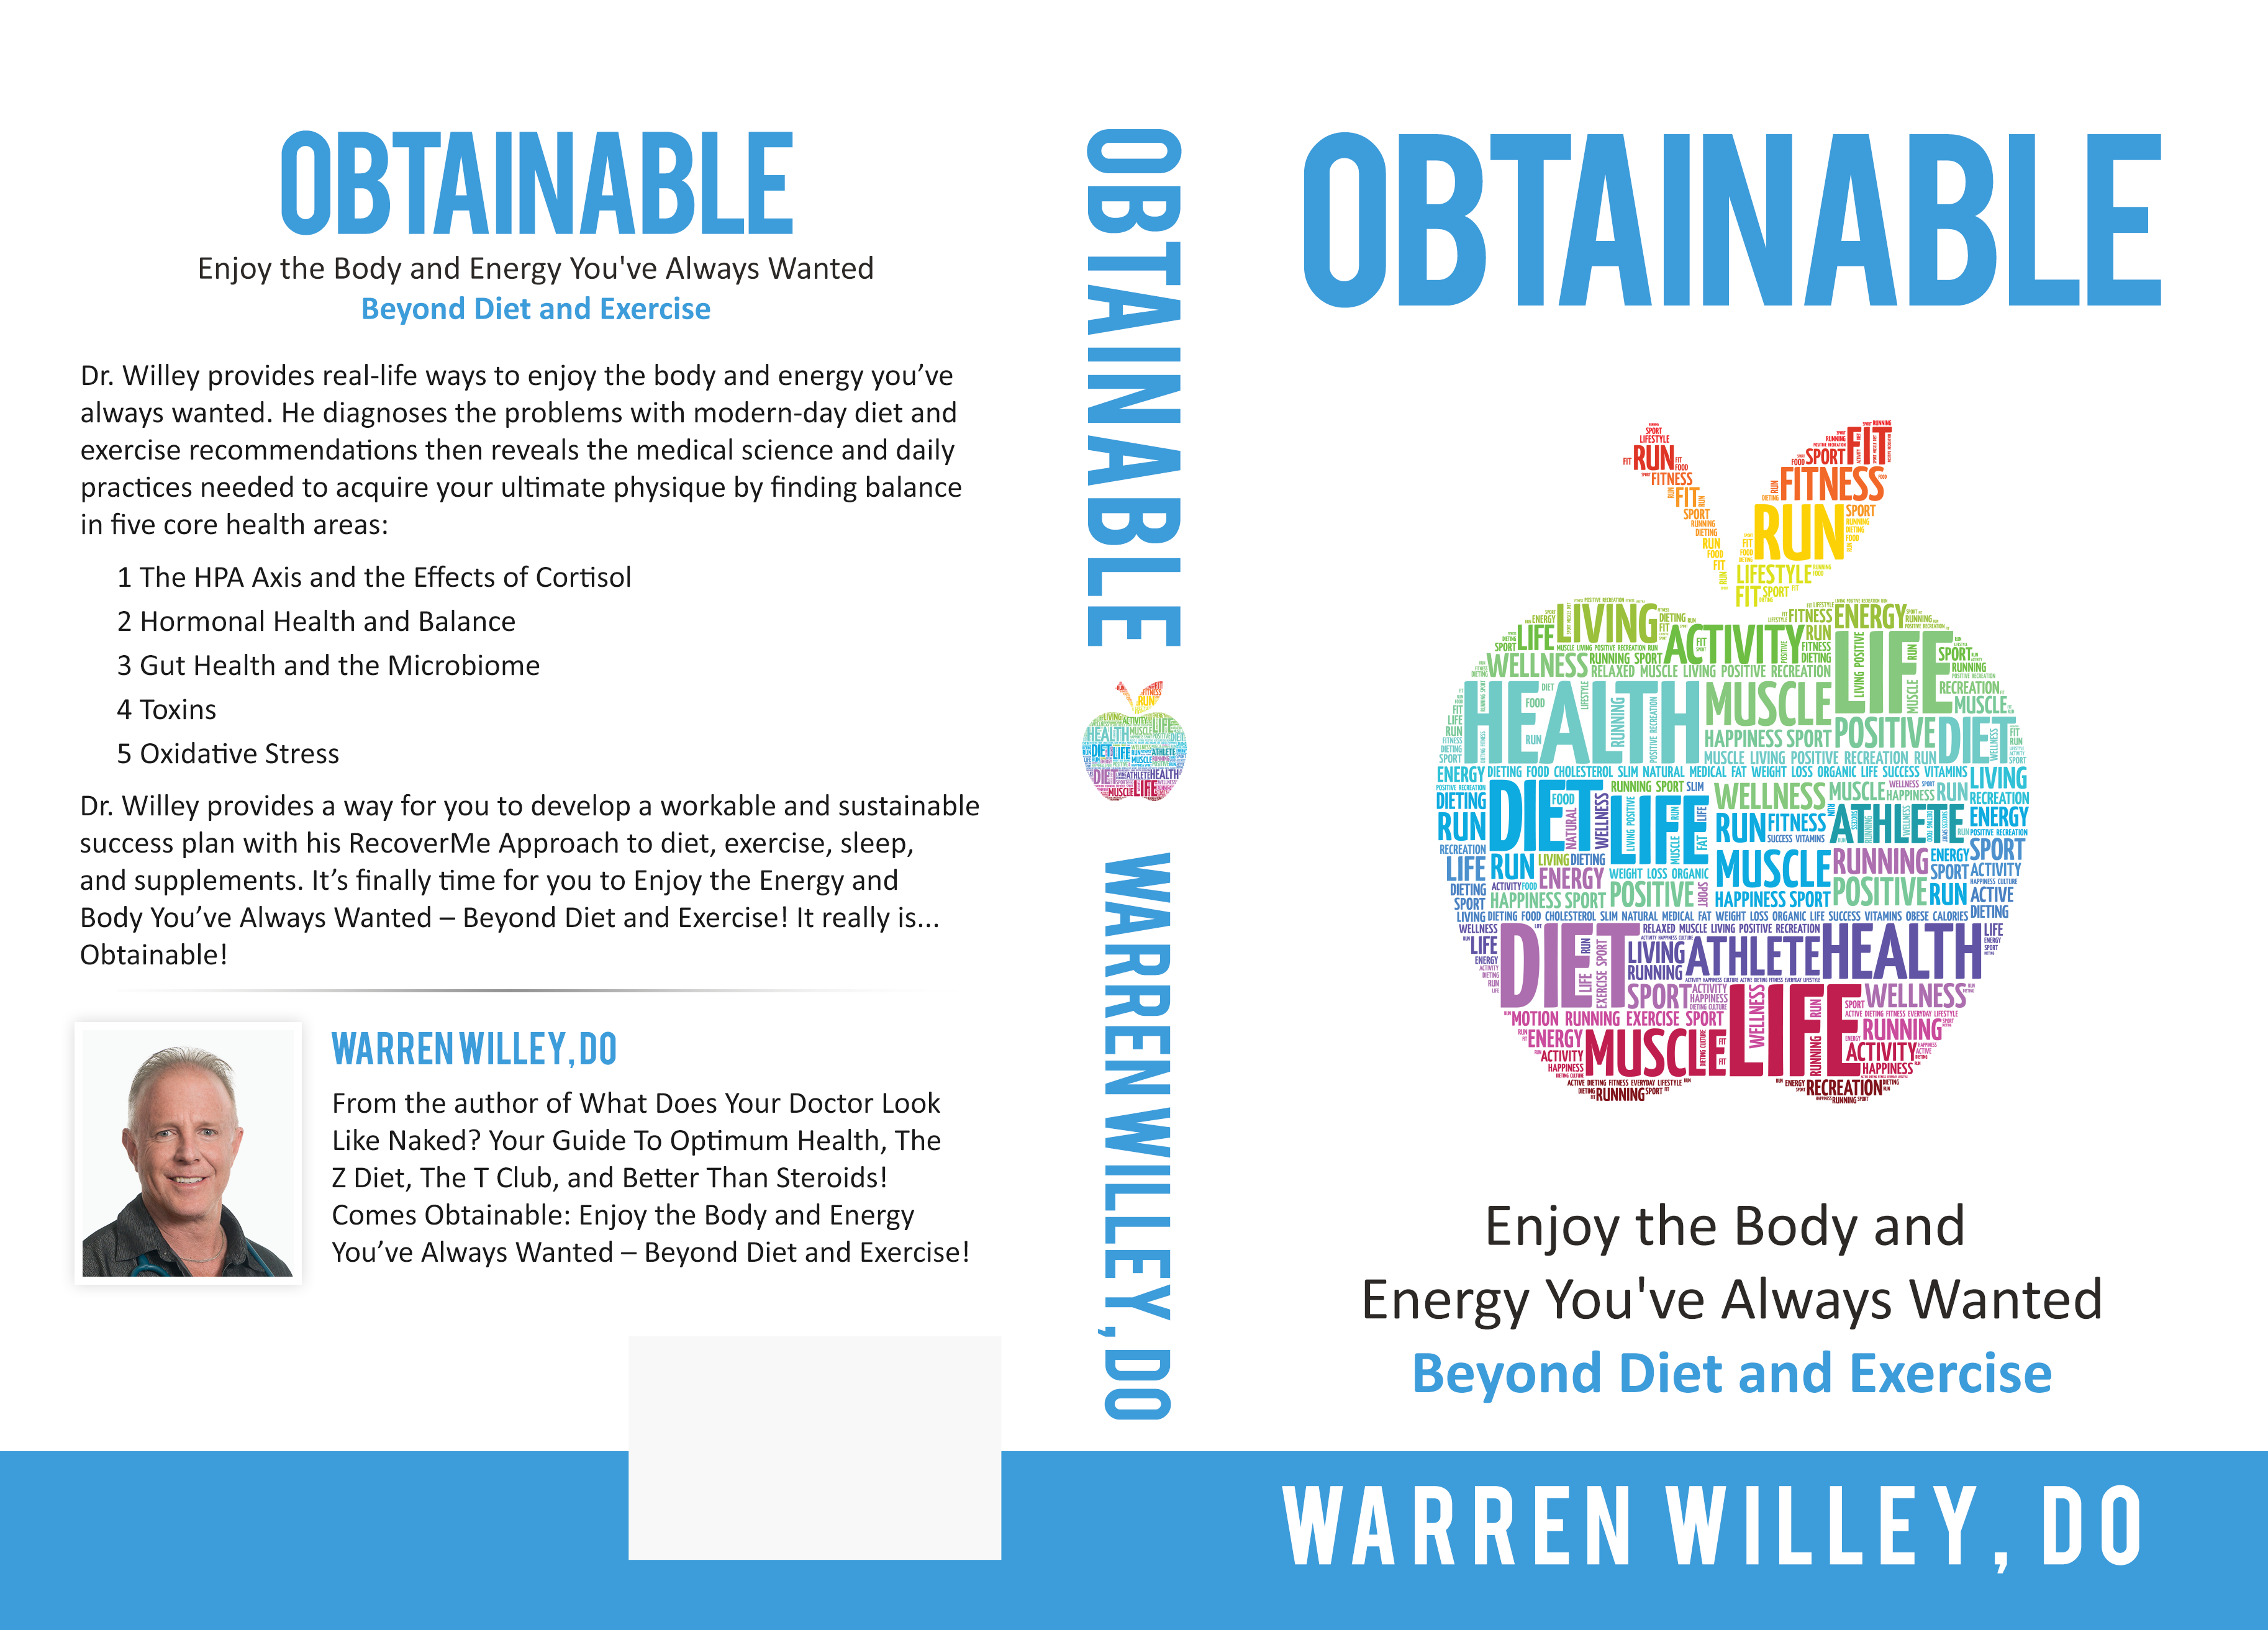 Obtainable— The Body You've Always Wanted